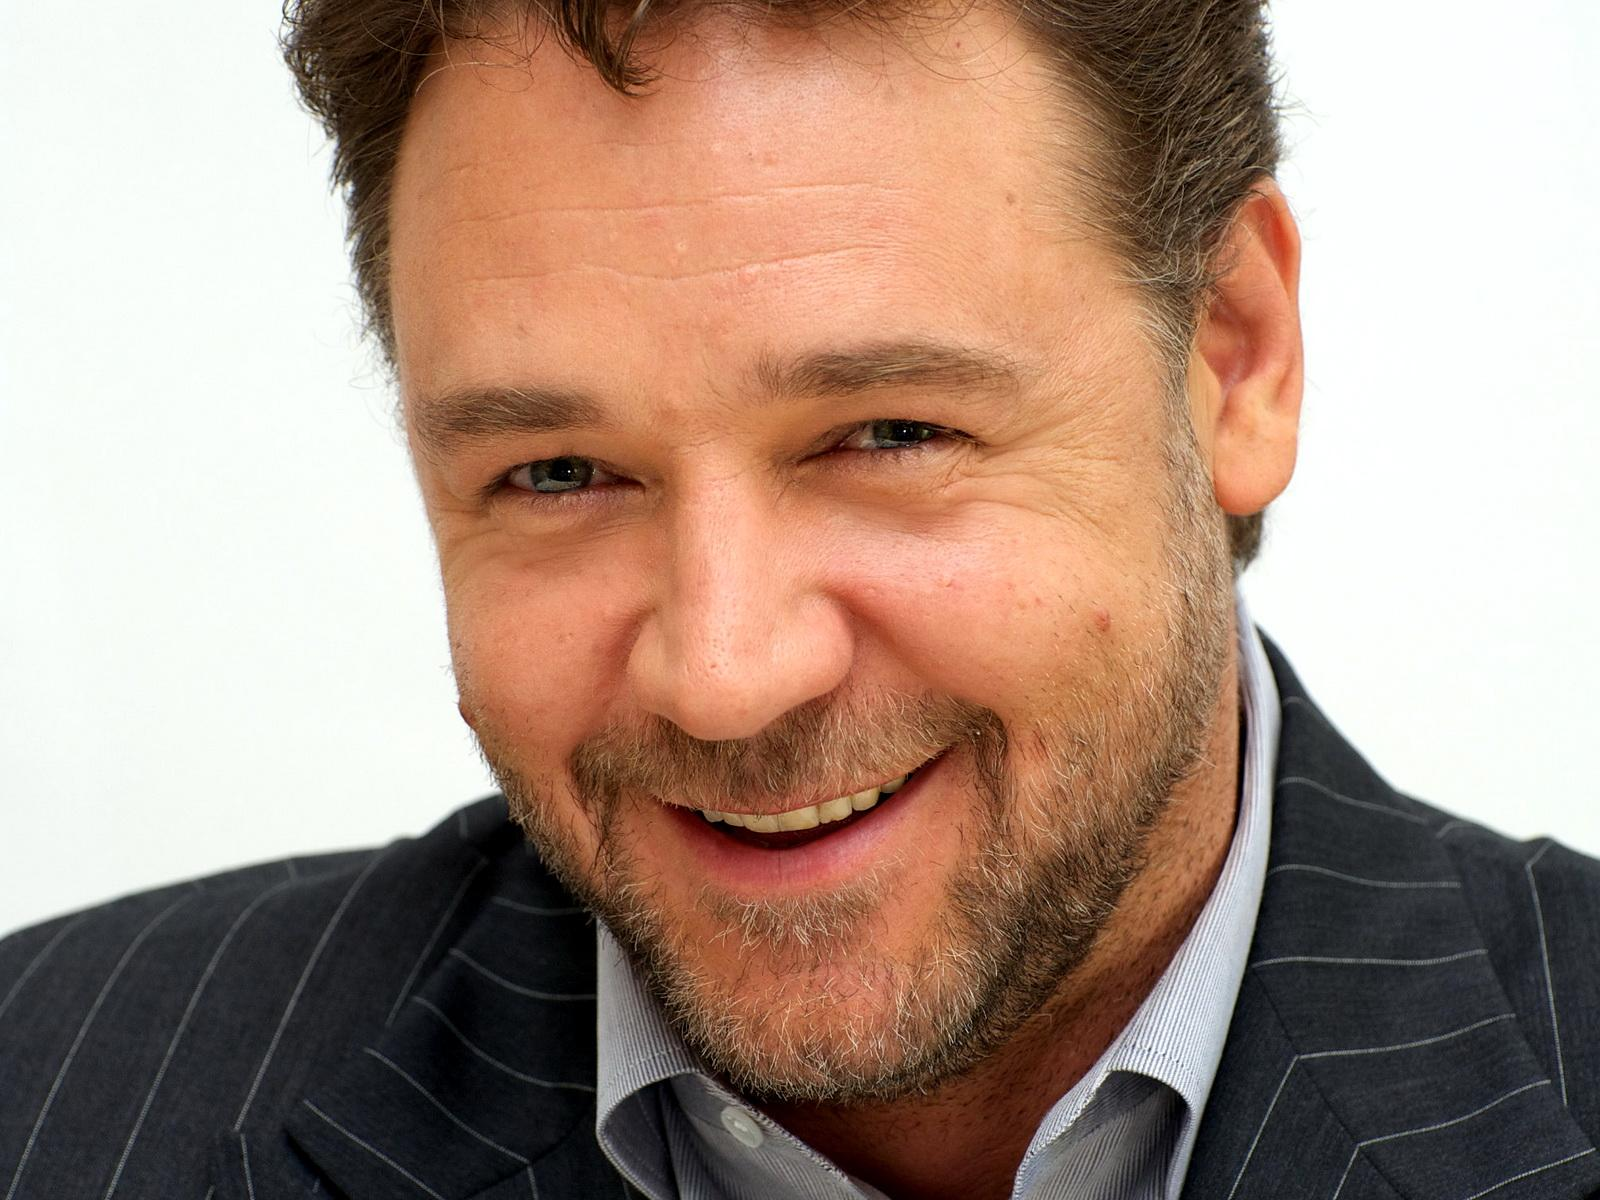 Russell Crowe Smile Wallpapers 52383 1600x1200 px ~ HDWallSource